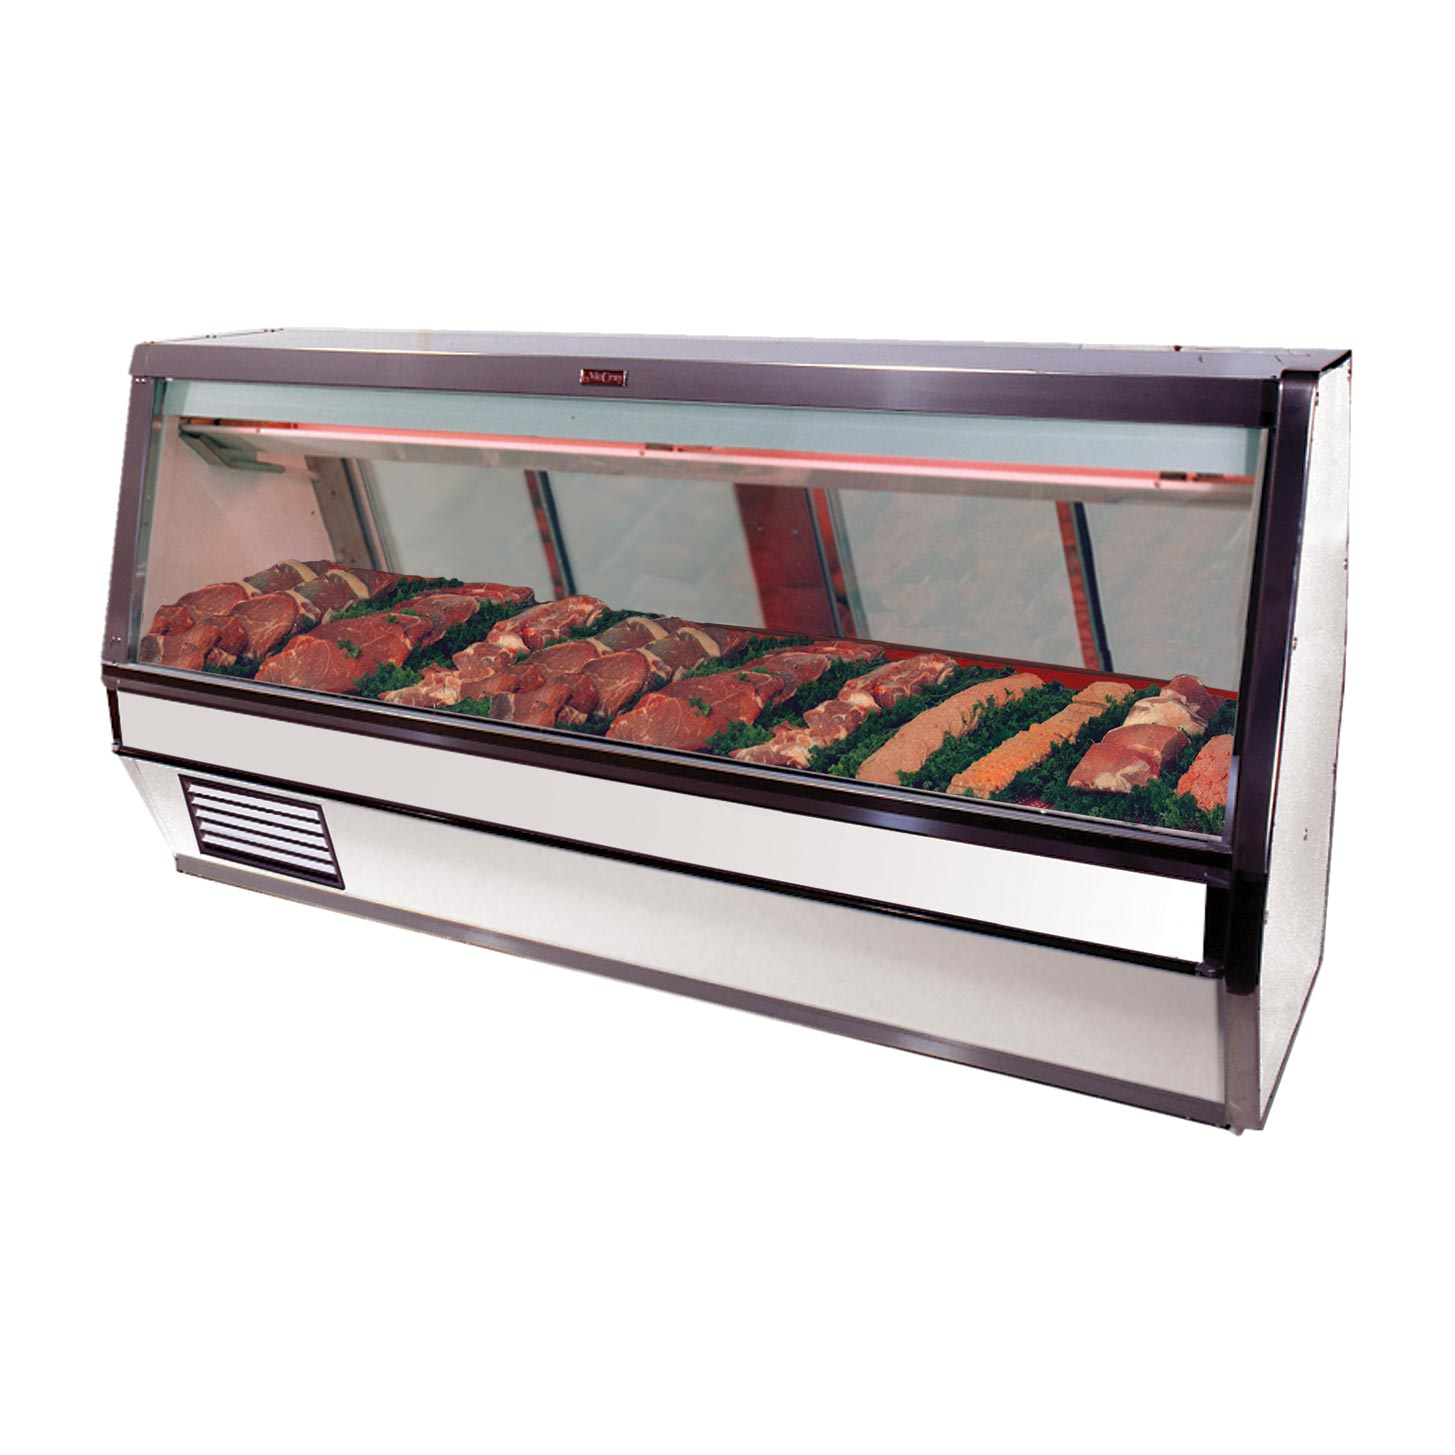 Howard-McCray R-CMS40E-10-LED display case, red meat deli